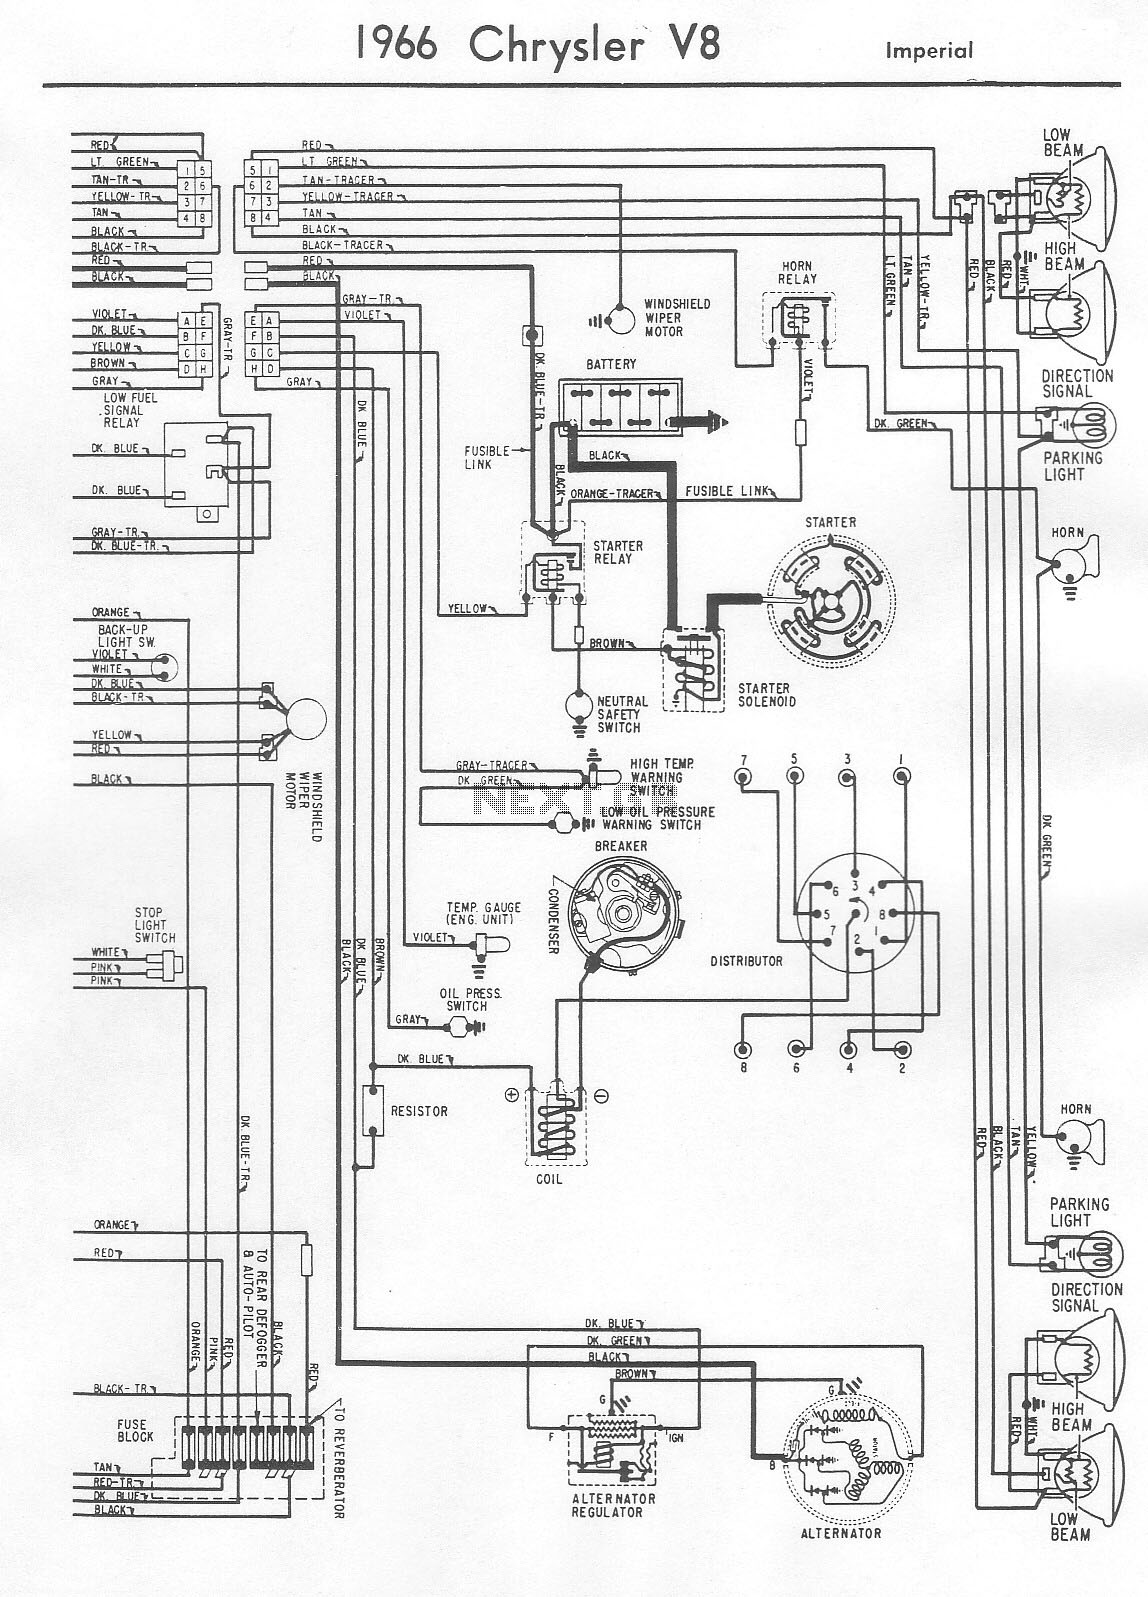 1967 Chrysler Newport Wiring Diagram Detailed Diagrams 1977 Cordoba 1966 Schematics Green